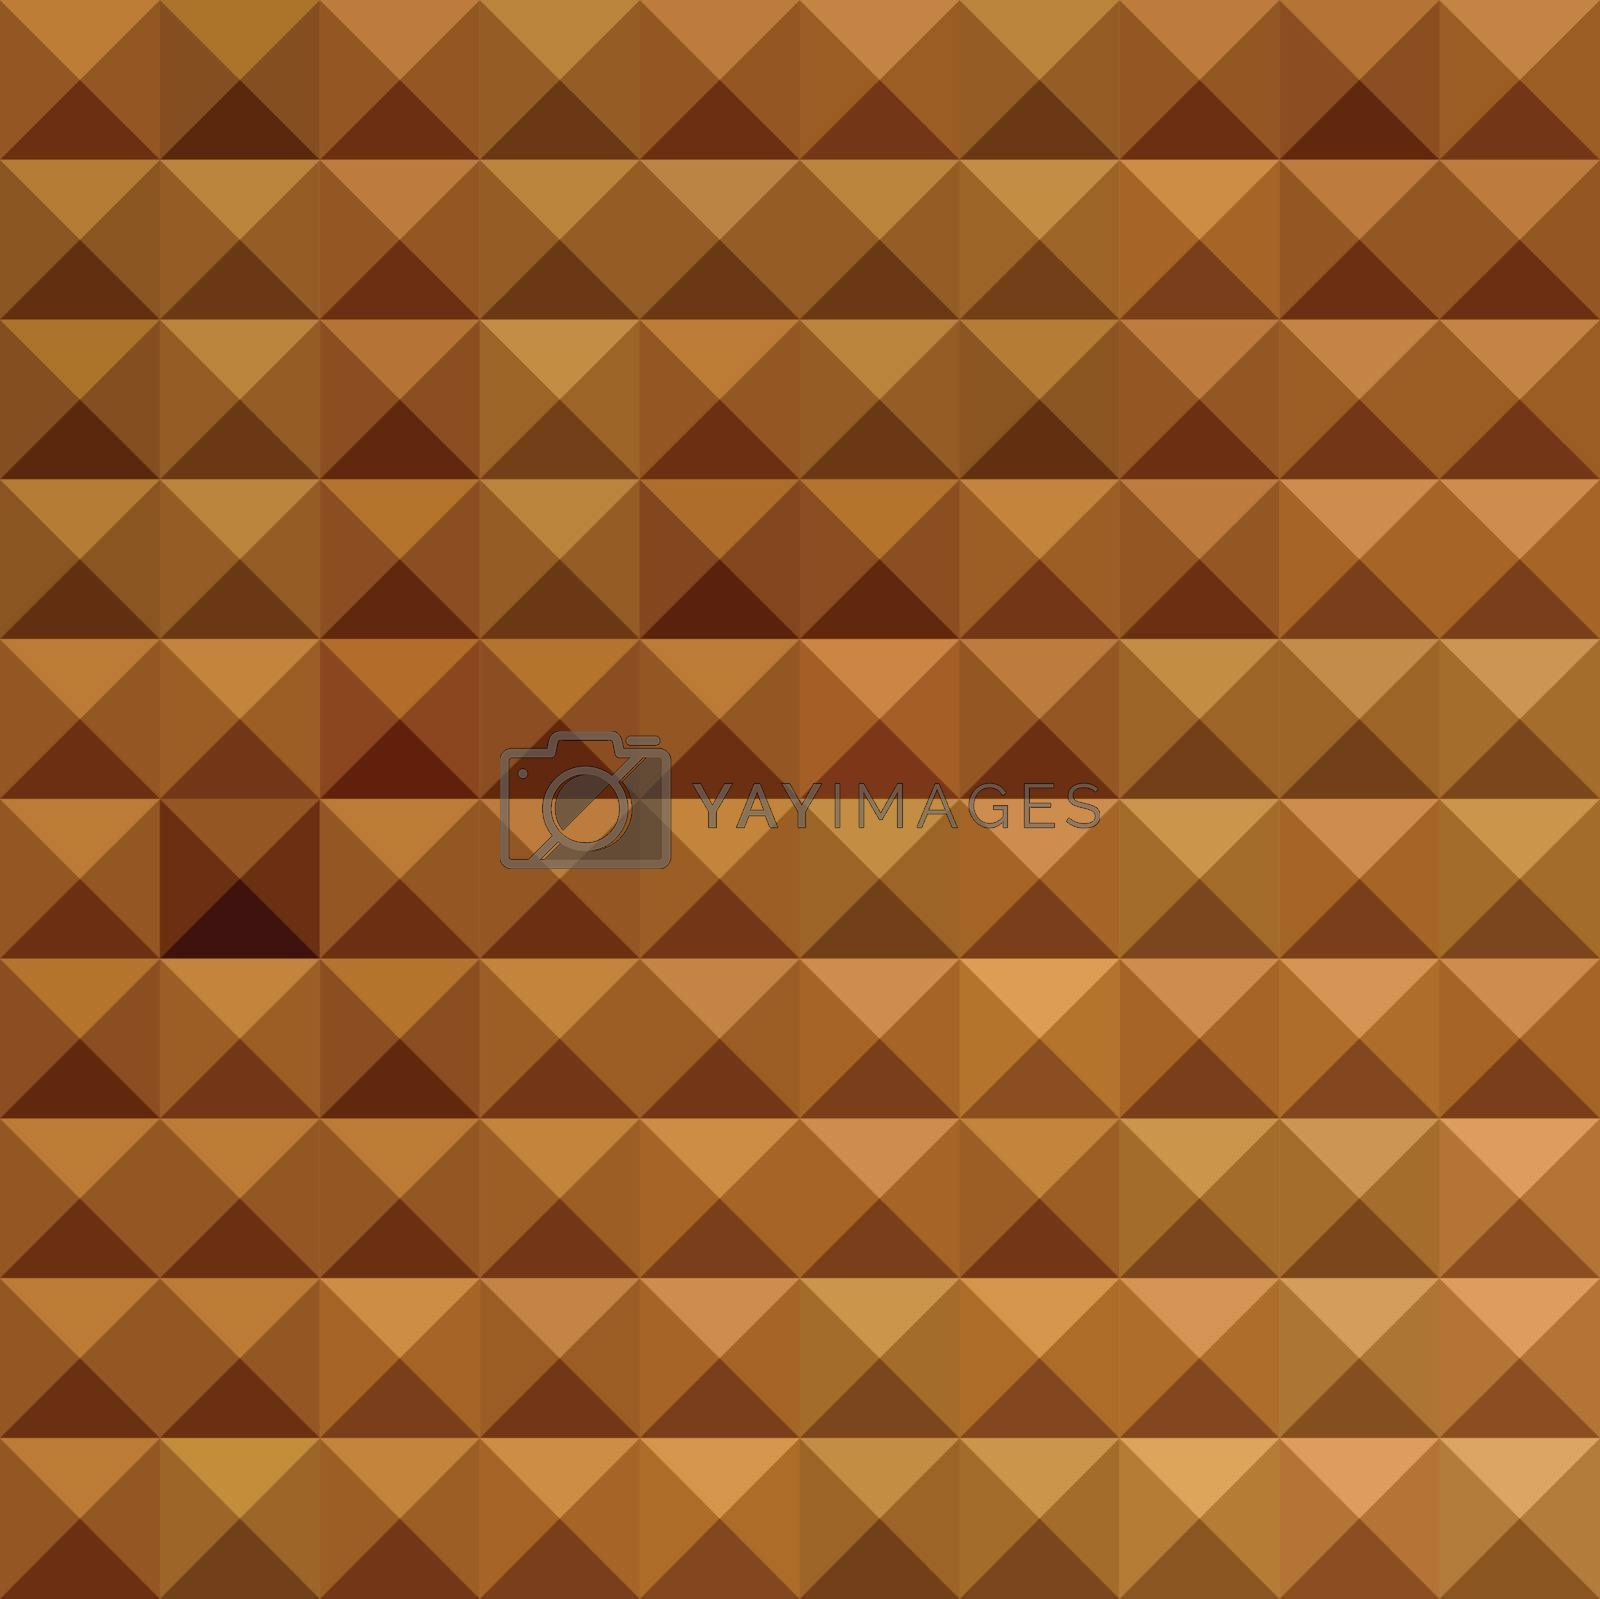 Low polygon style illustration of a bronze brown abstract geometric background.